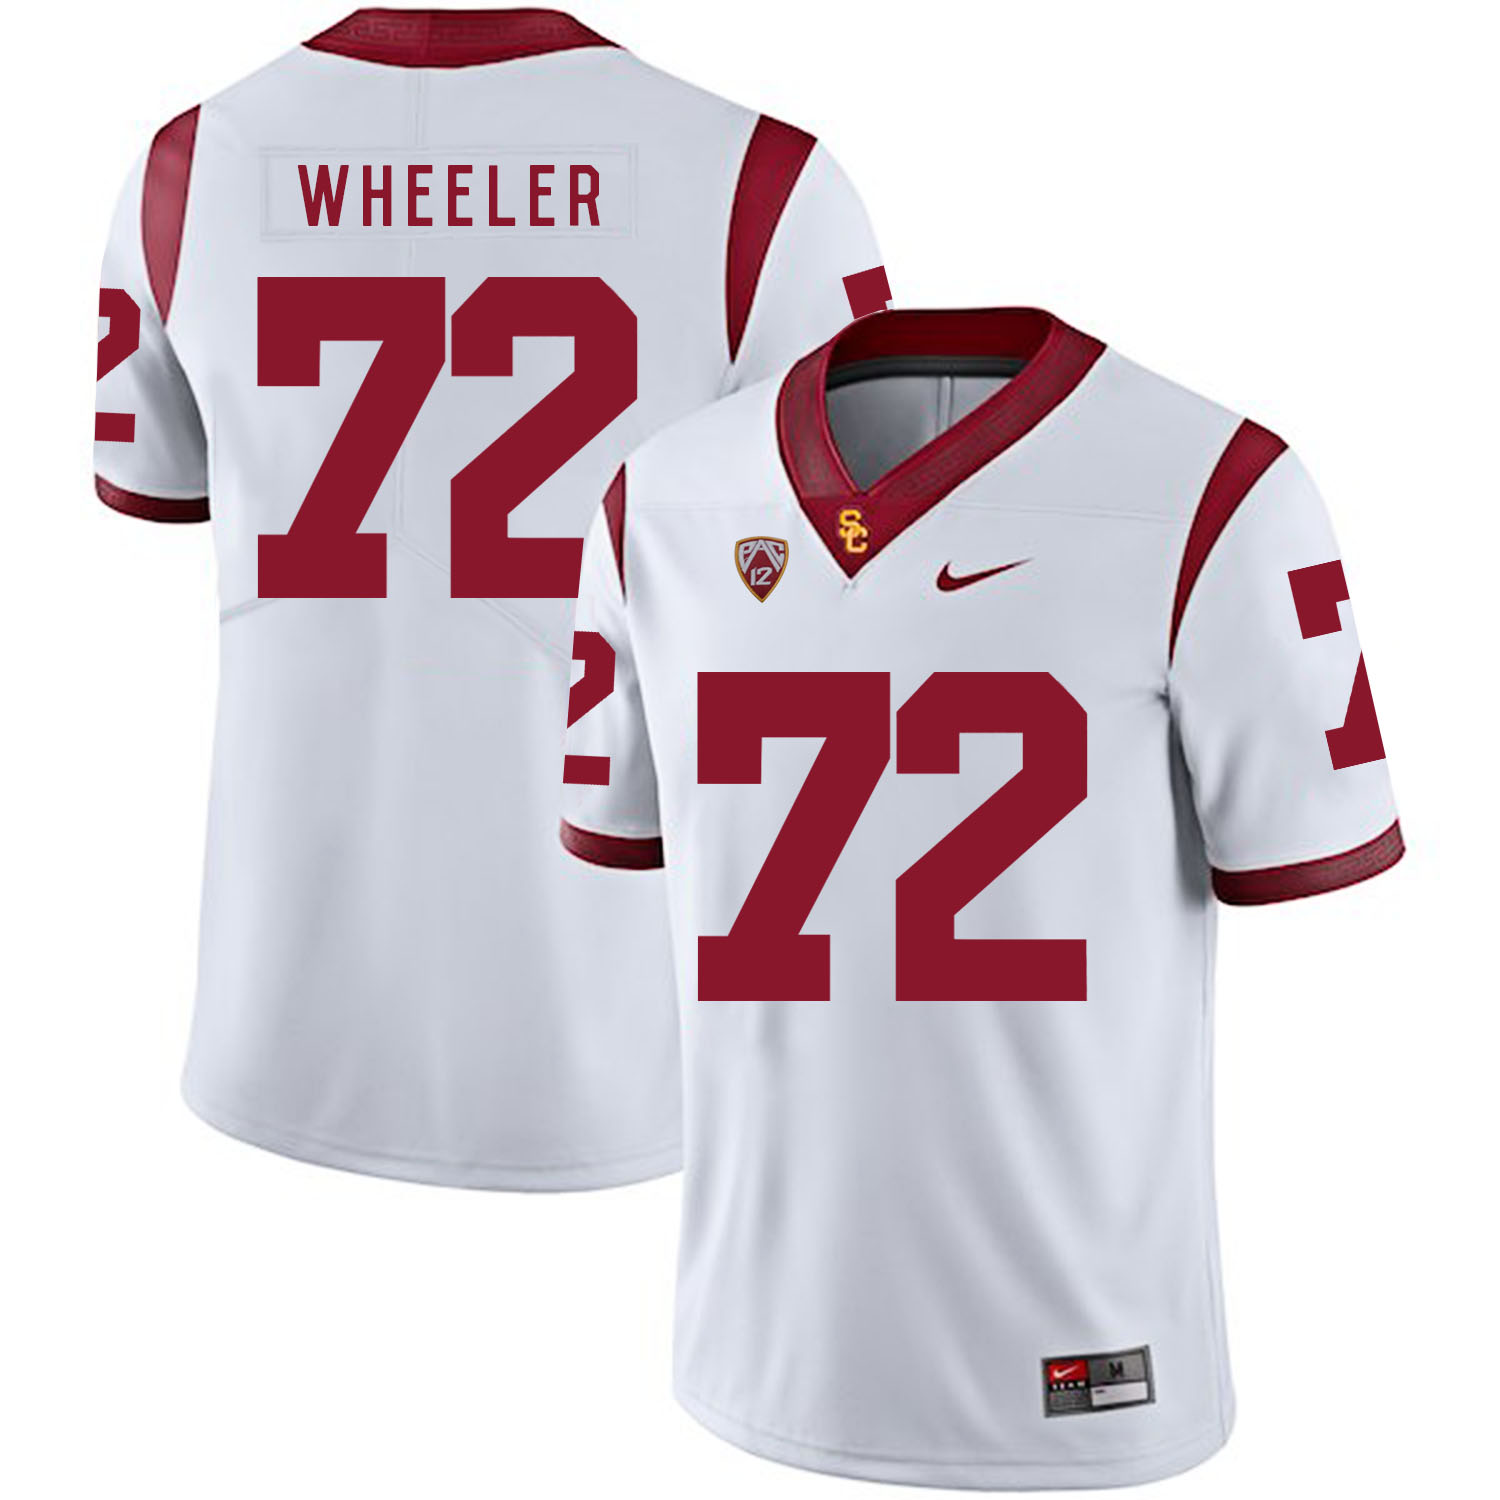 USC Trojans 72 Chad Wheeler White College Football Jersey